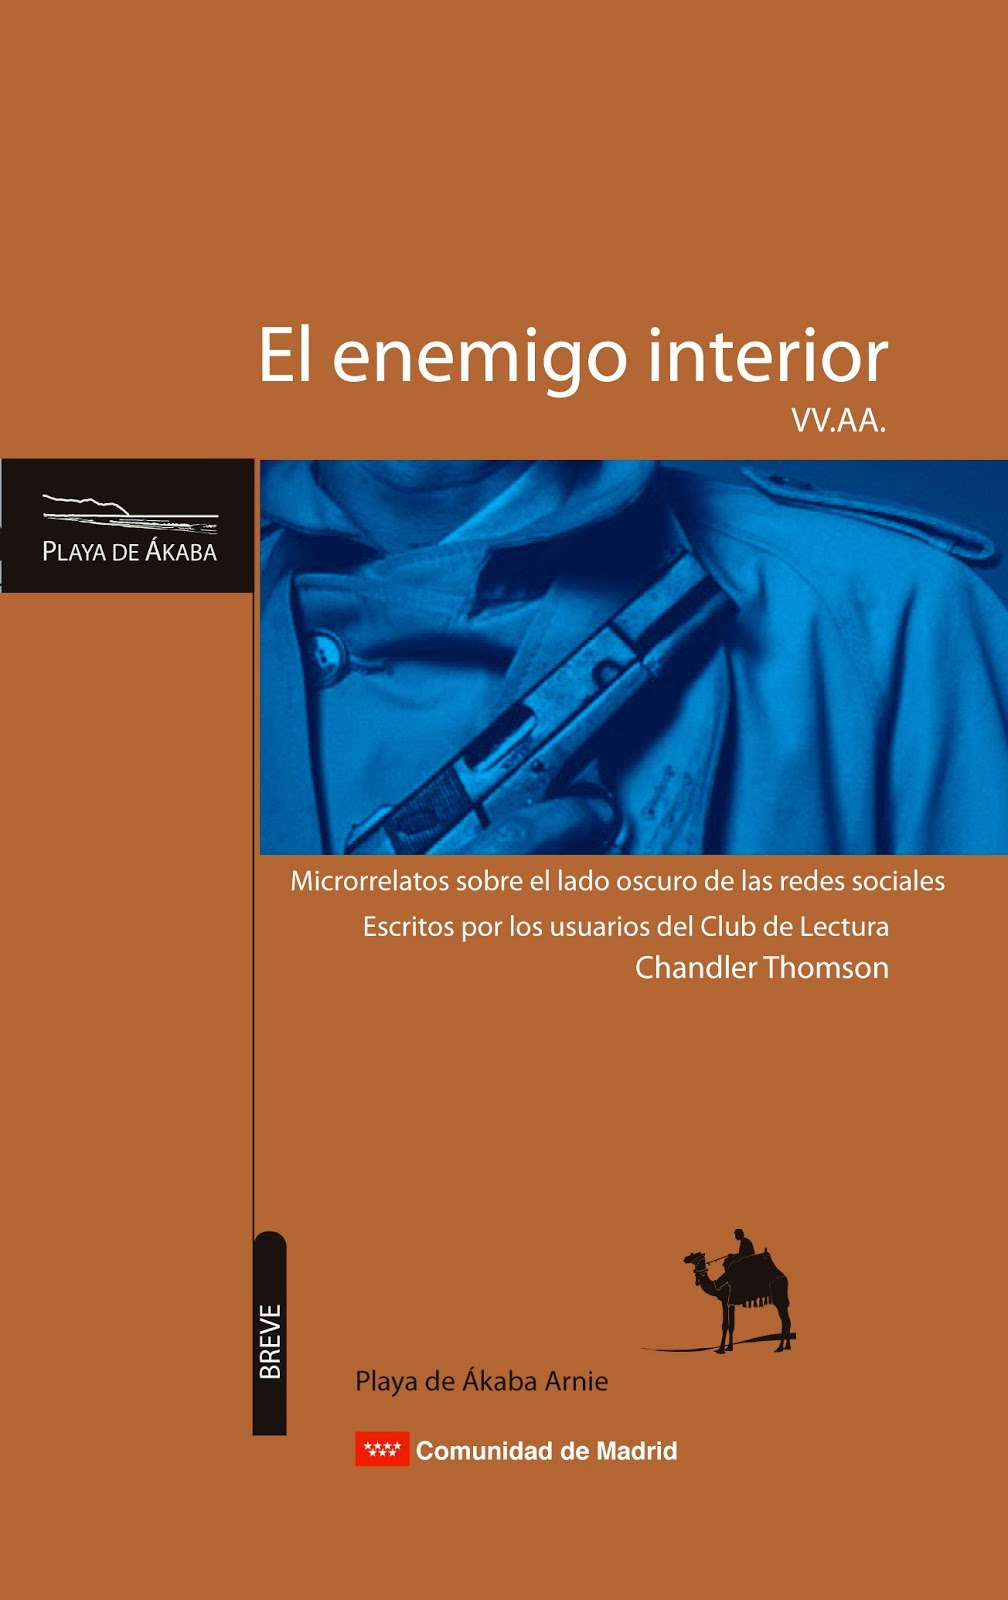 El enemigo interior